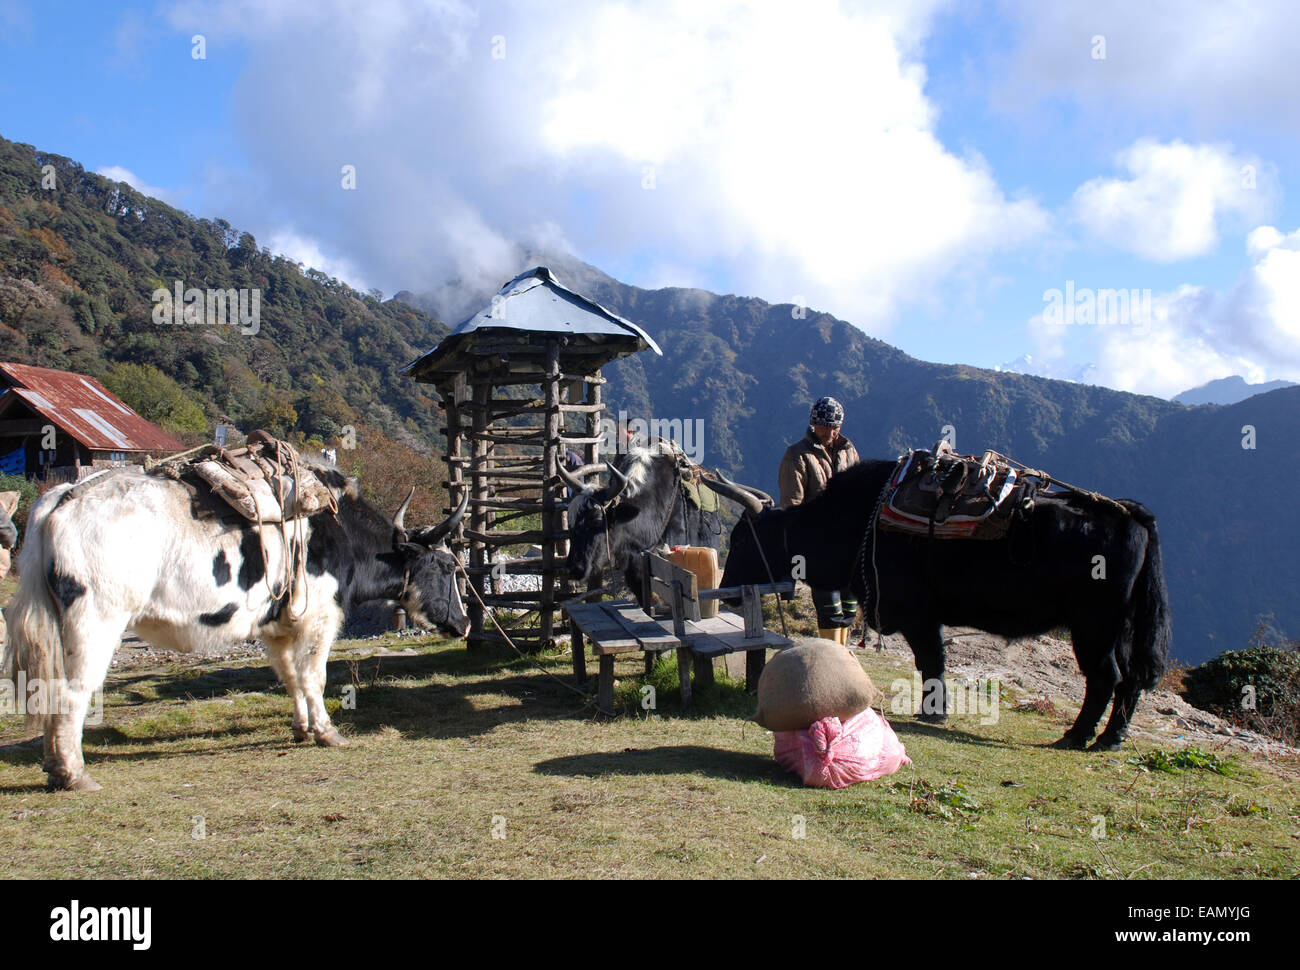 Yaks await loading at a high point in the Himalayan foothills in the Indian state of Sikkim - Stock Image